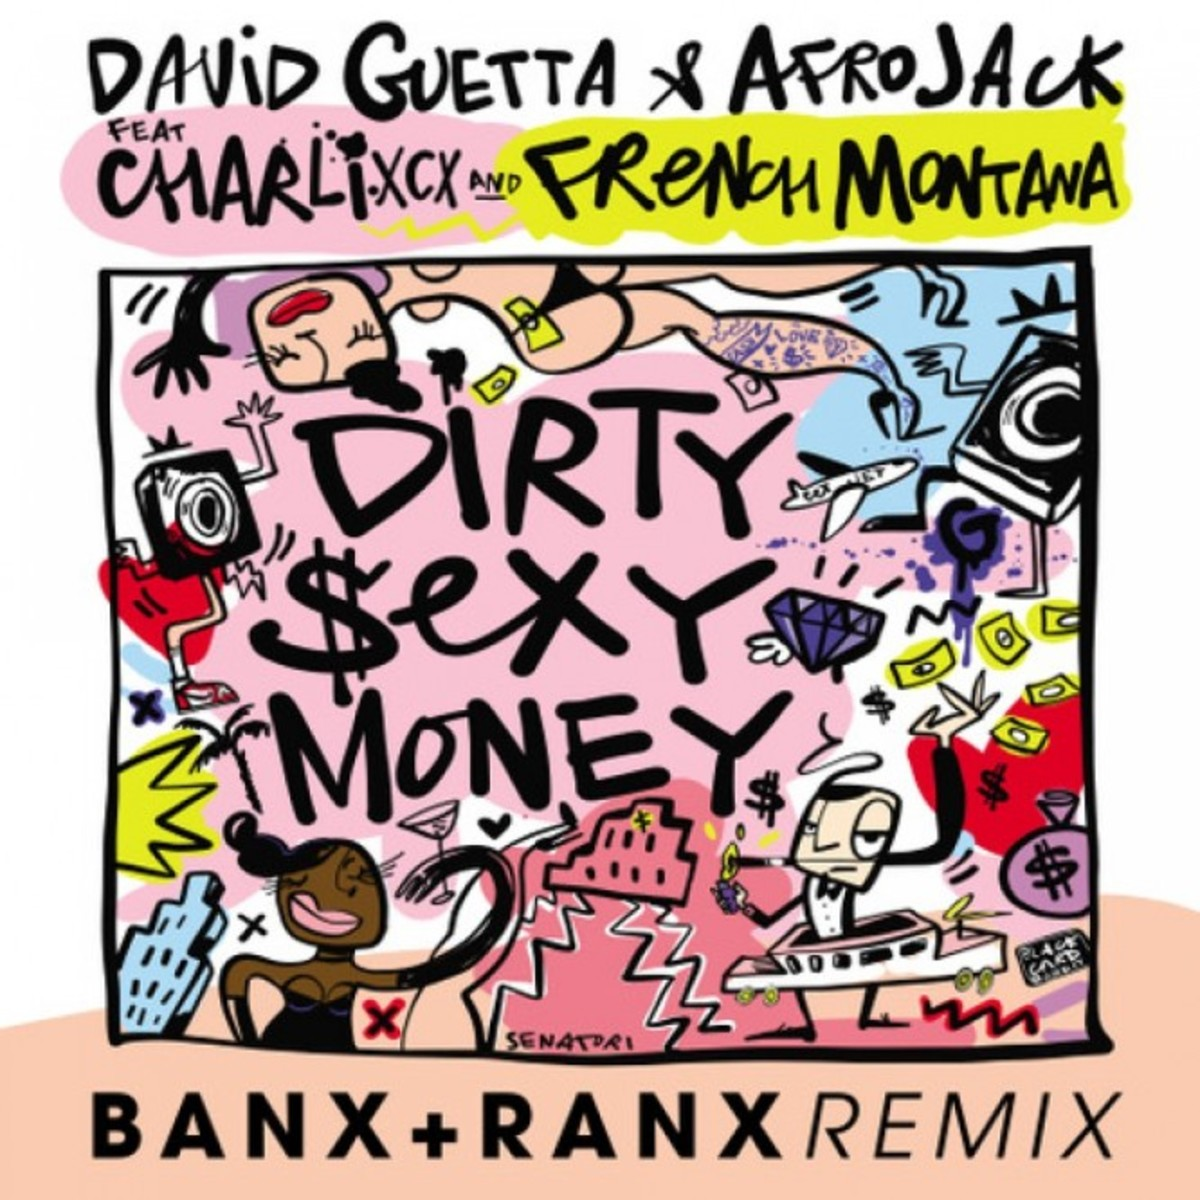 David Guetta Afrojack French Montana Charli XCX Banx and Ranx Remix